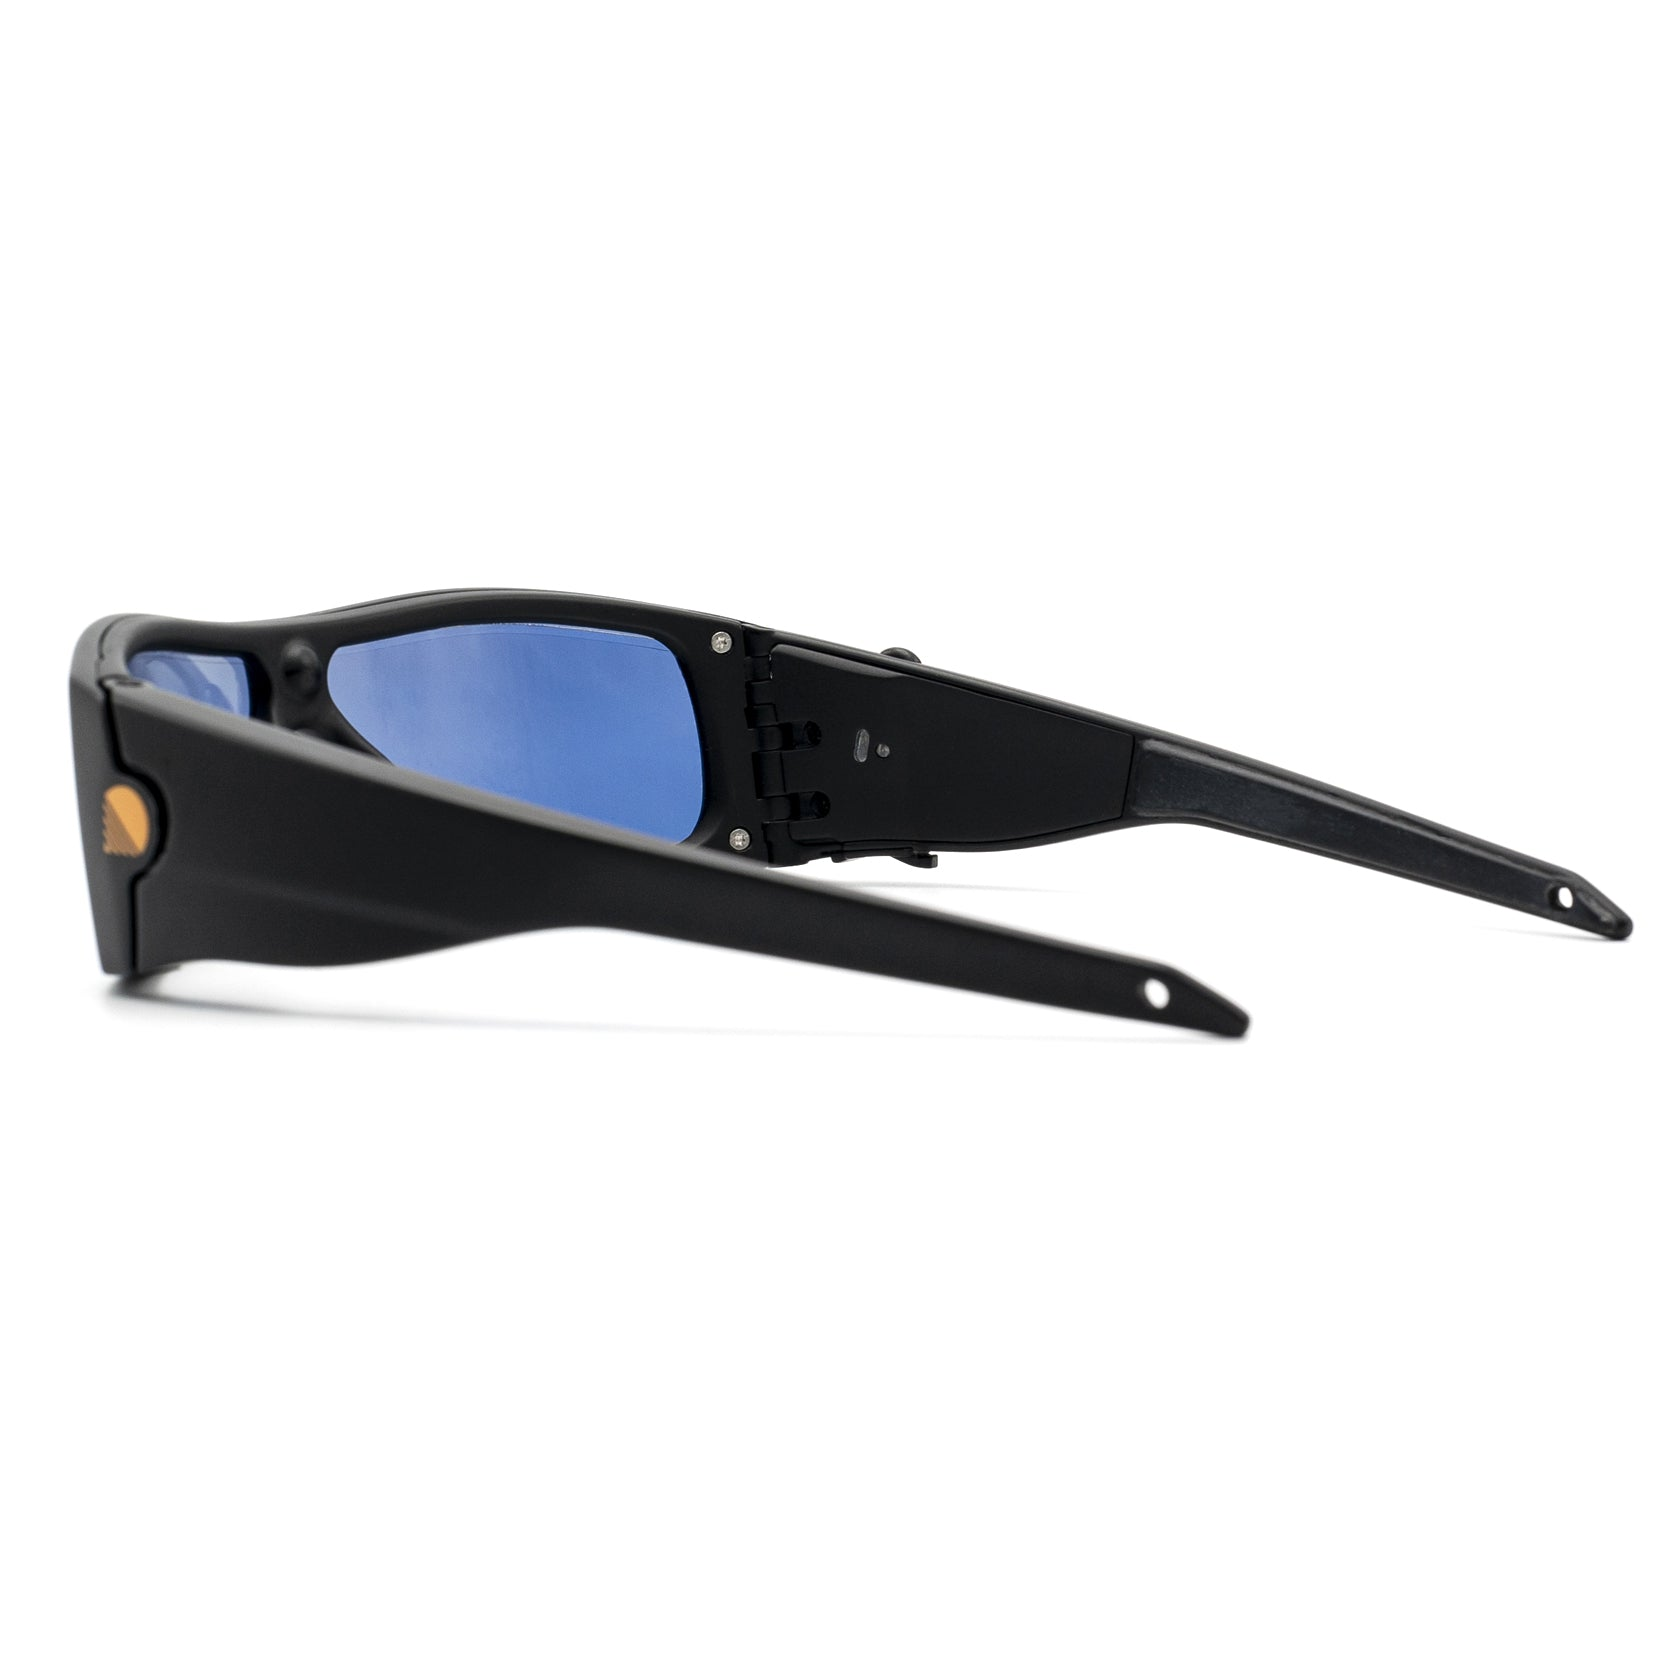 Fades Professional Auto Dimming Golf Sunglasses